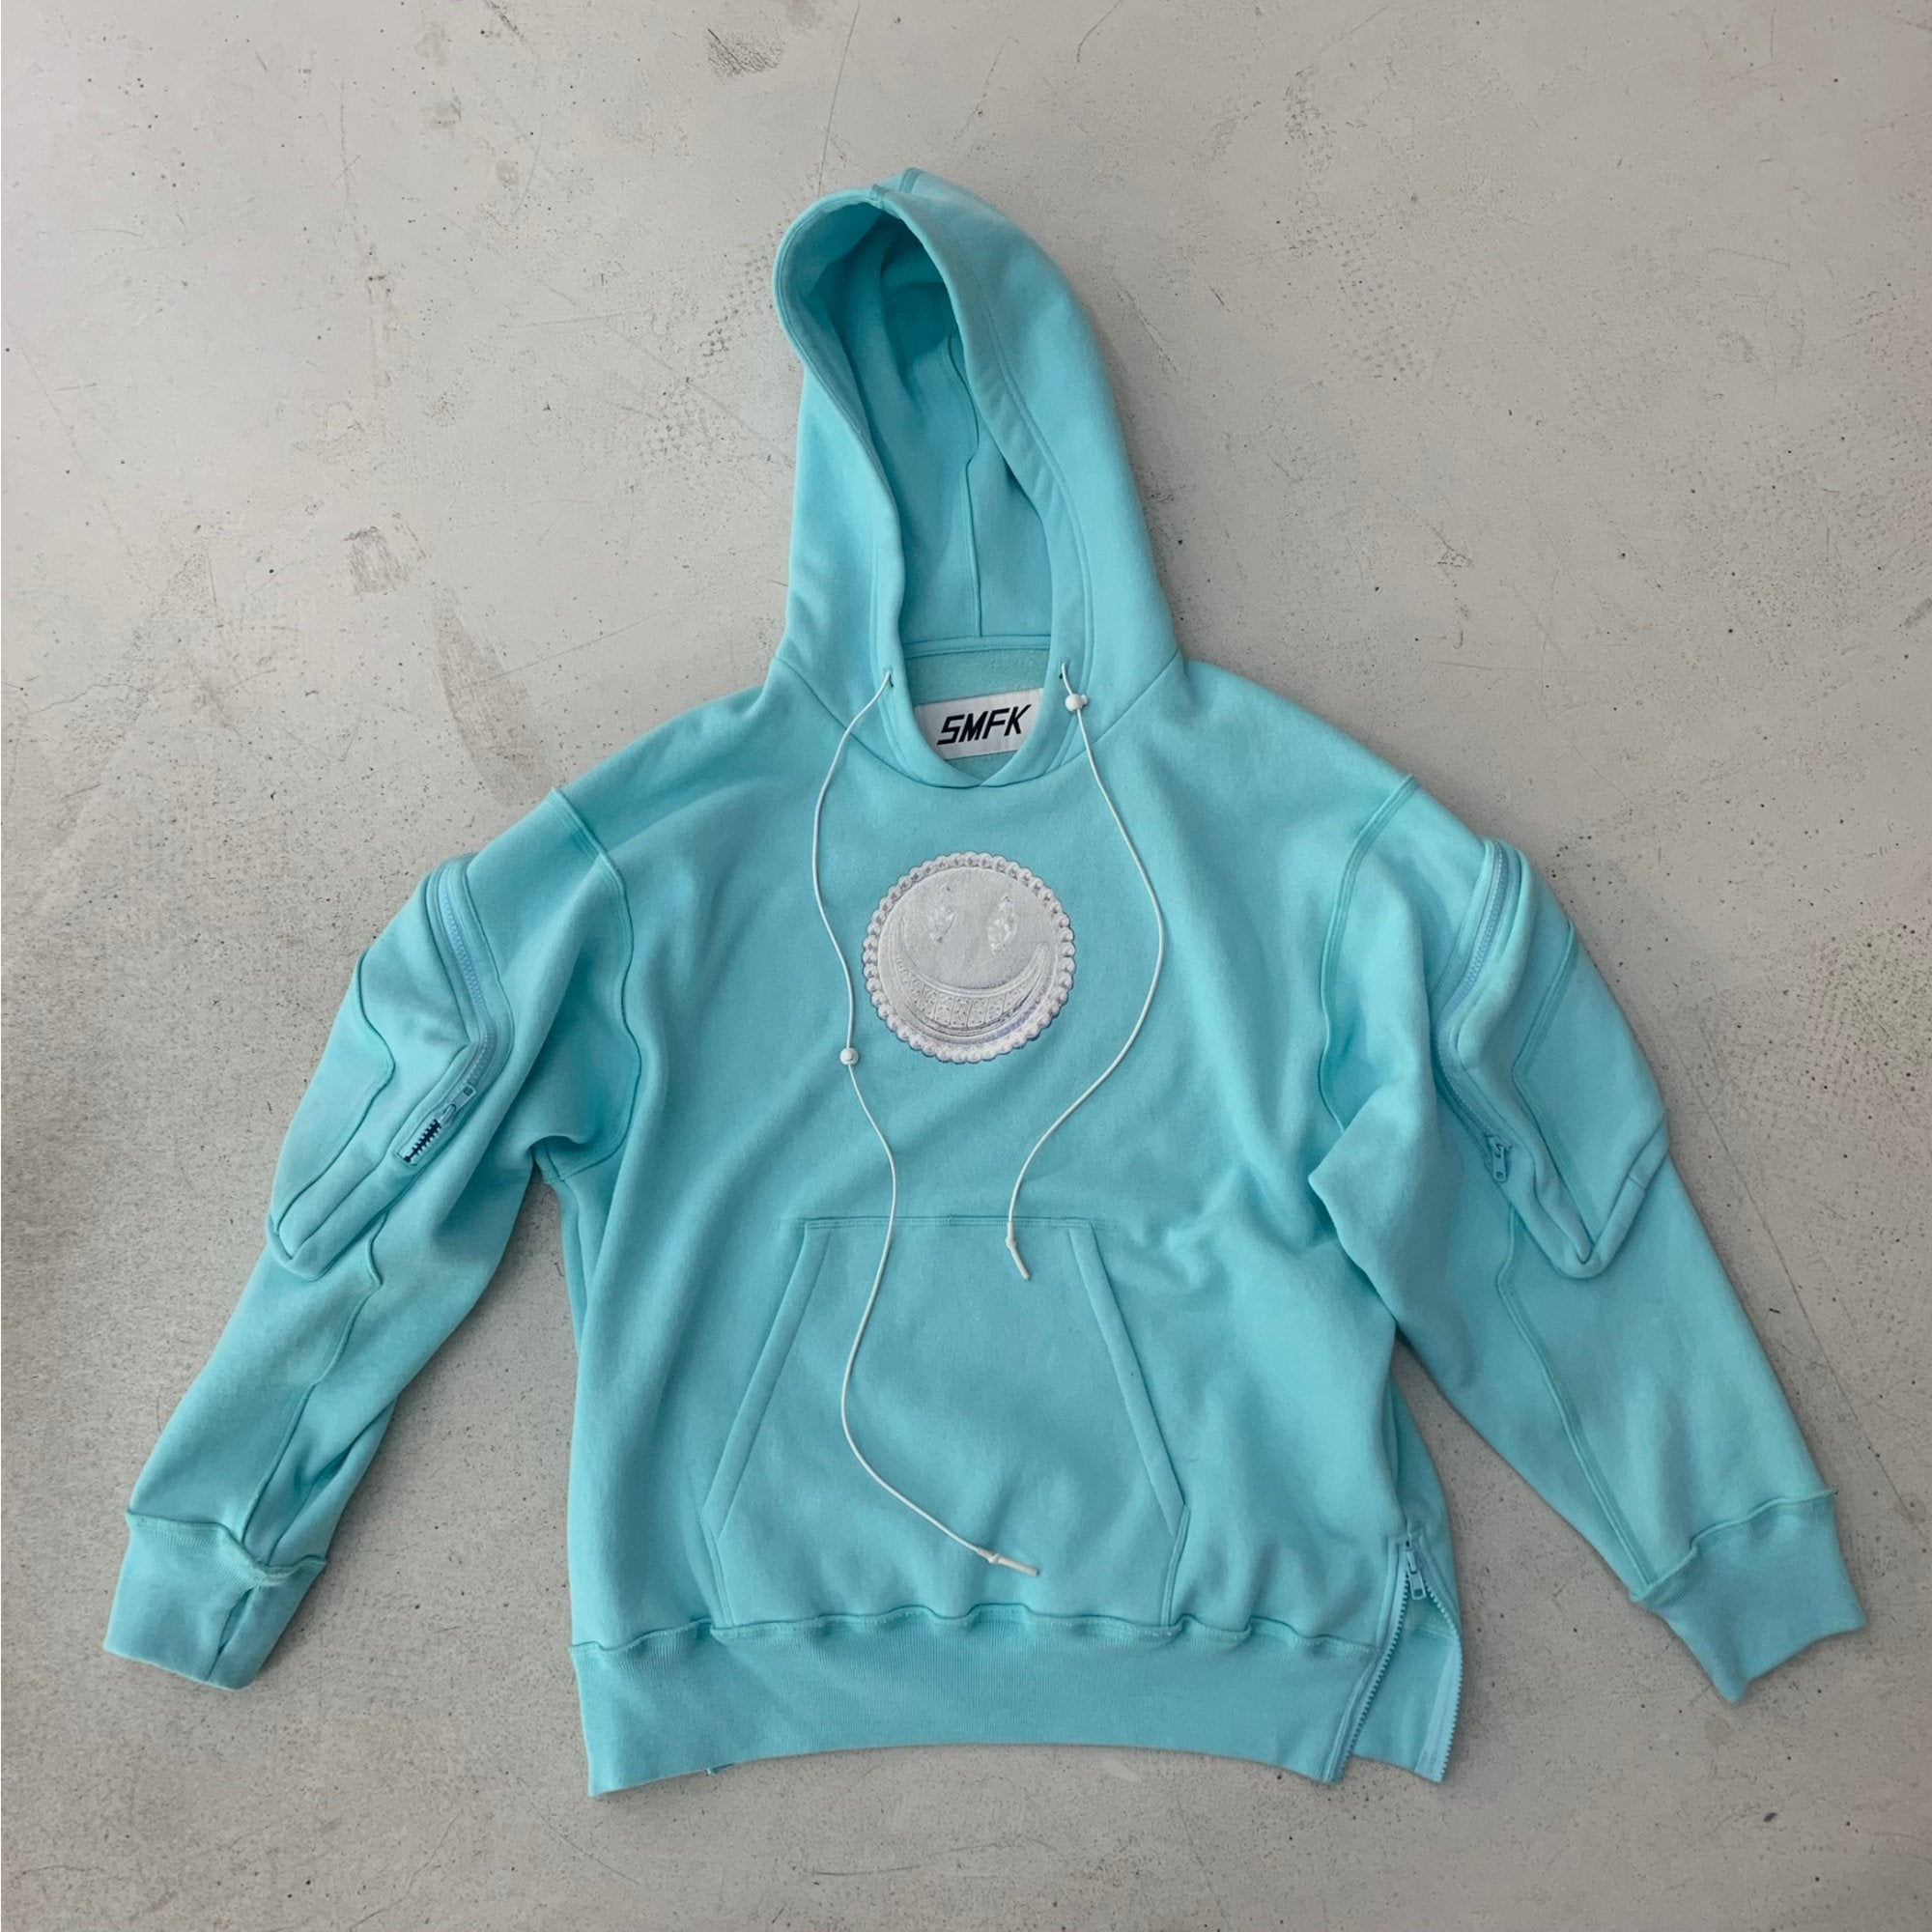 SMFK Lovely Tactical Hoodie Aqua | MADA IN CHINA